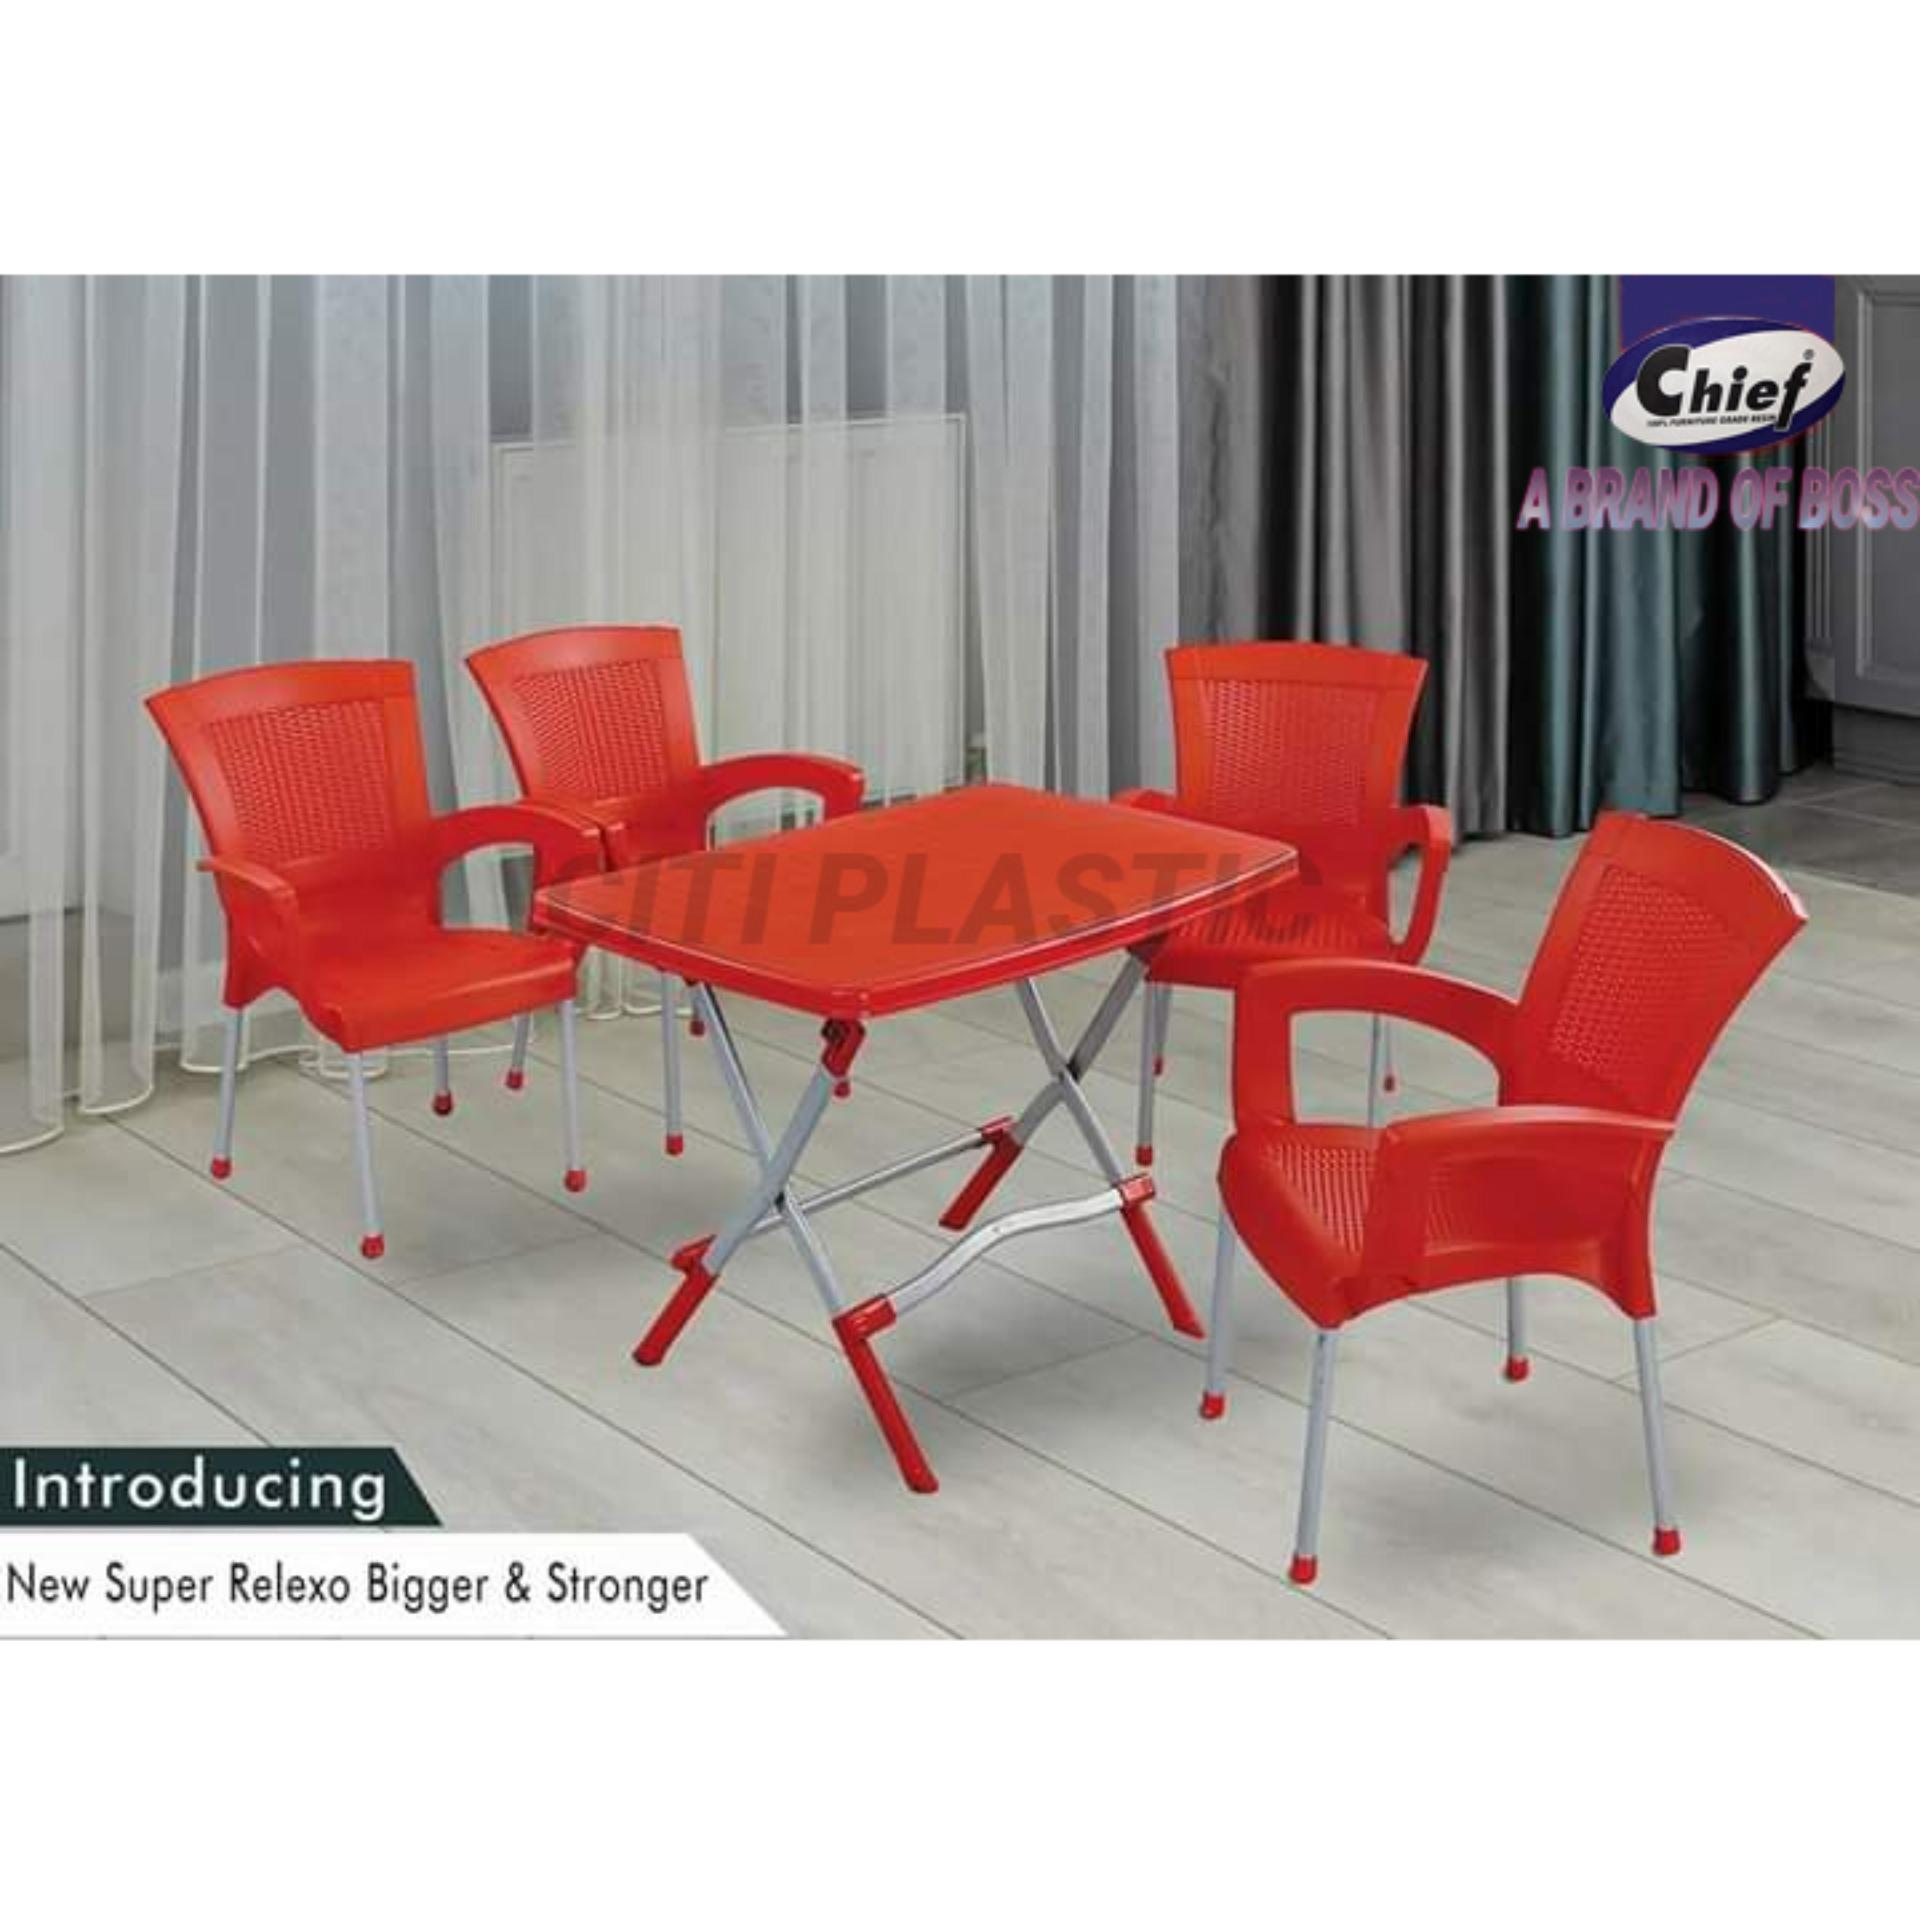 Set Of 4 Relaxo Plastic Chairs Indoor Outdoor Chairs Chief Boss Chairs And Steel Frame Folding Dining Table Boss Red Buy Online At Best Prices In Pakistan Daraz Pk